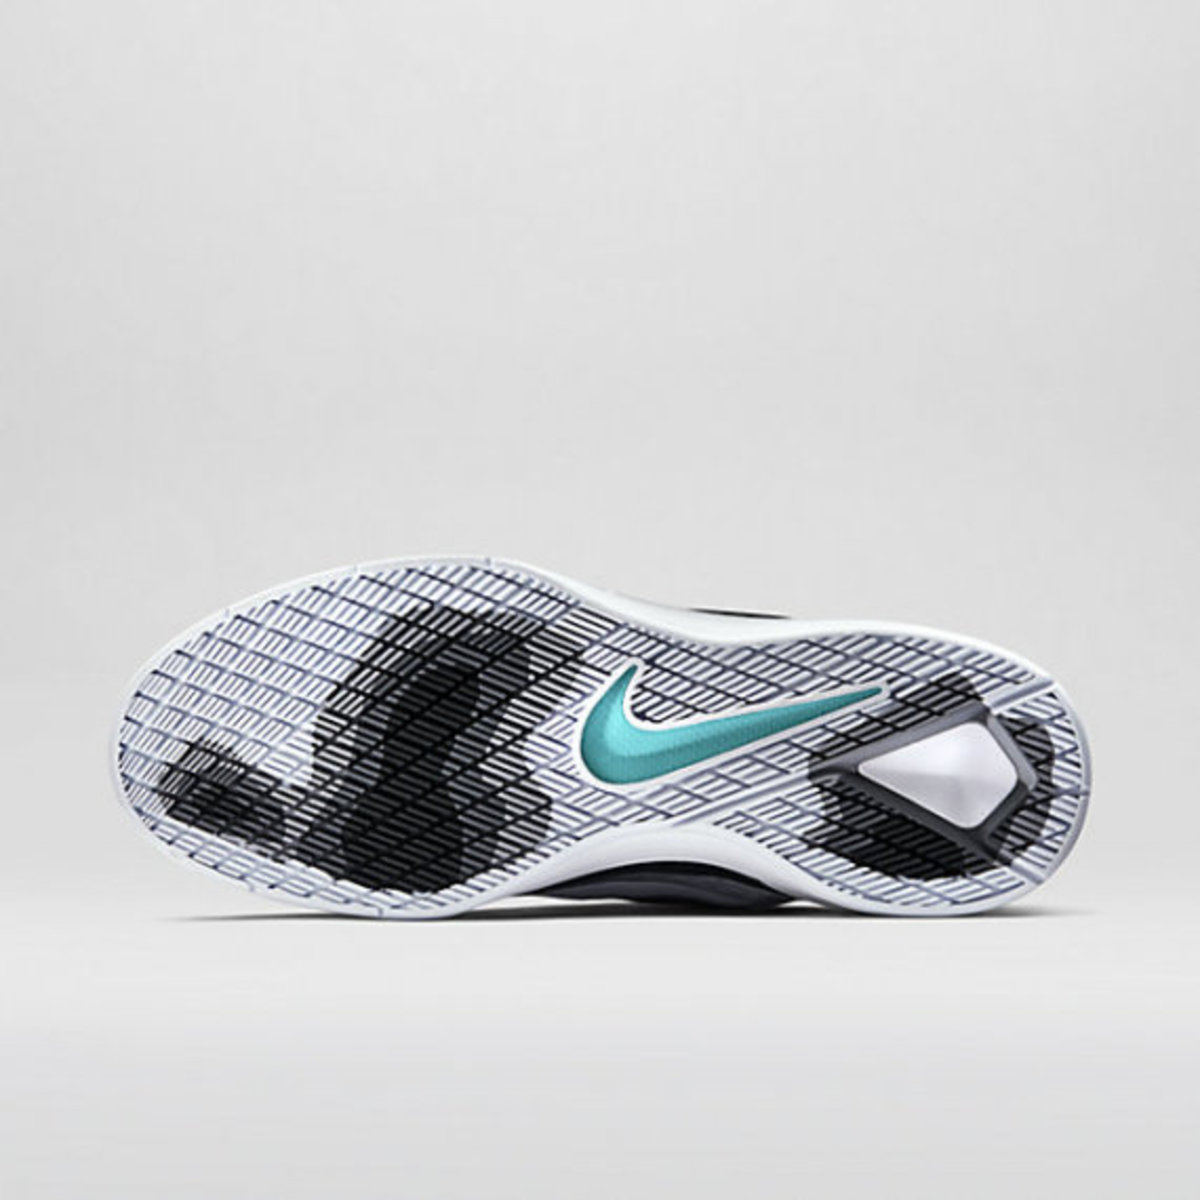 nike-sb-paul-rod-8-anthracite-05